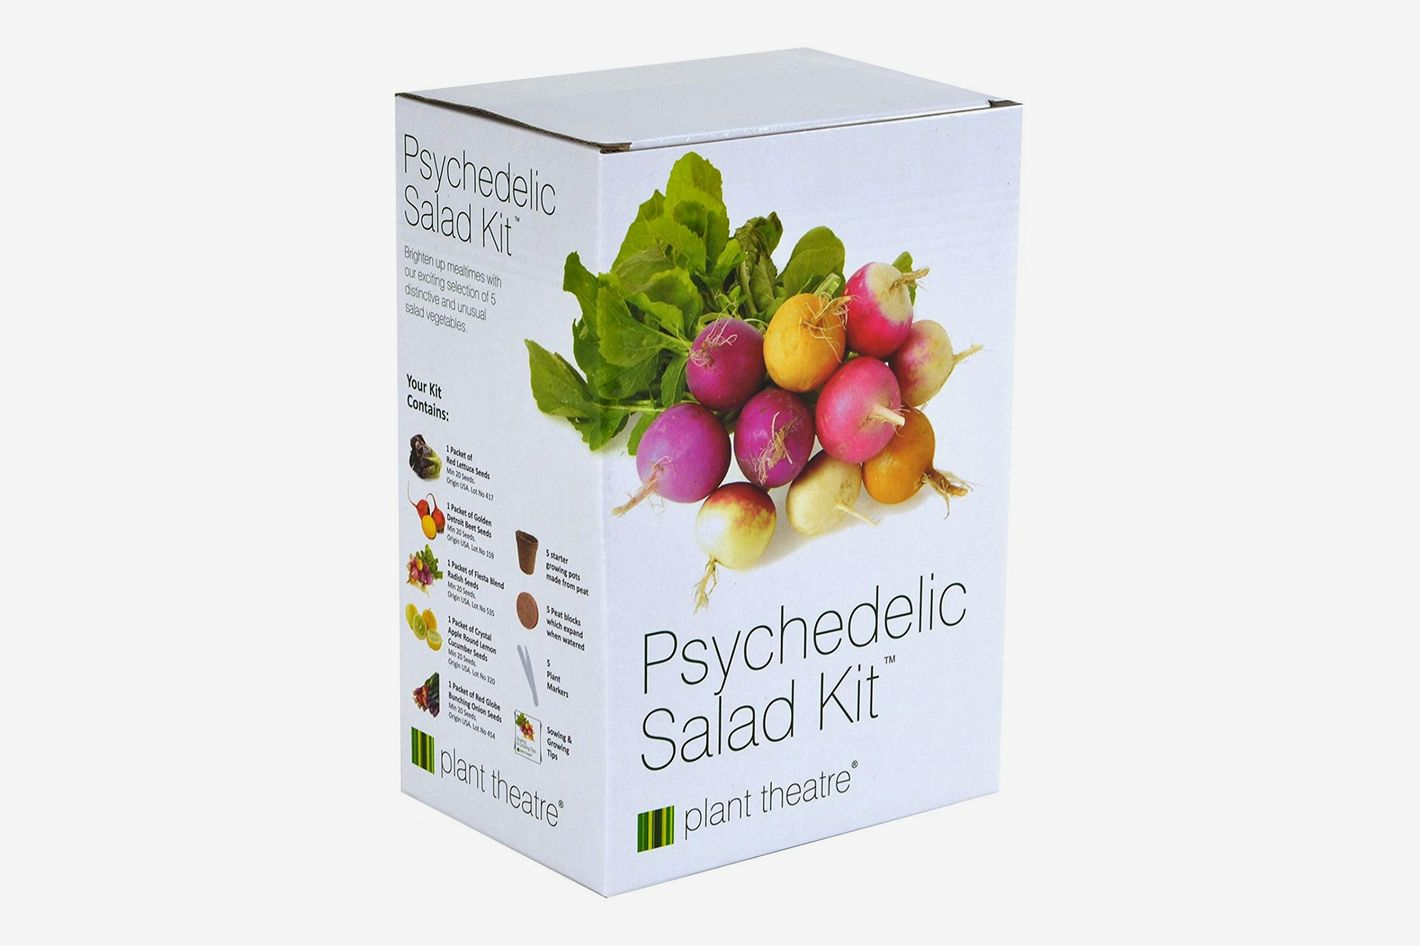 Plant Theatre Psychedelic Salad Kit